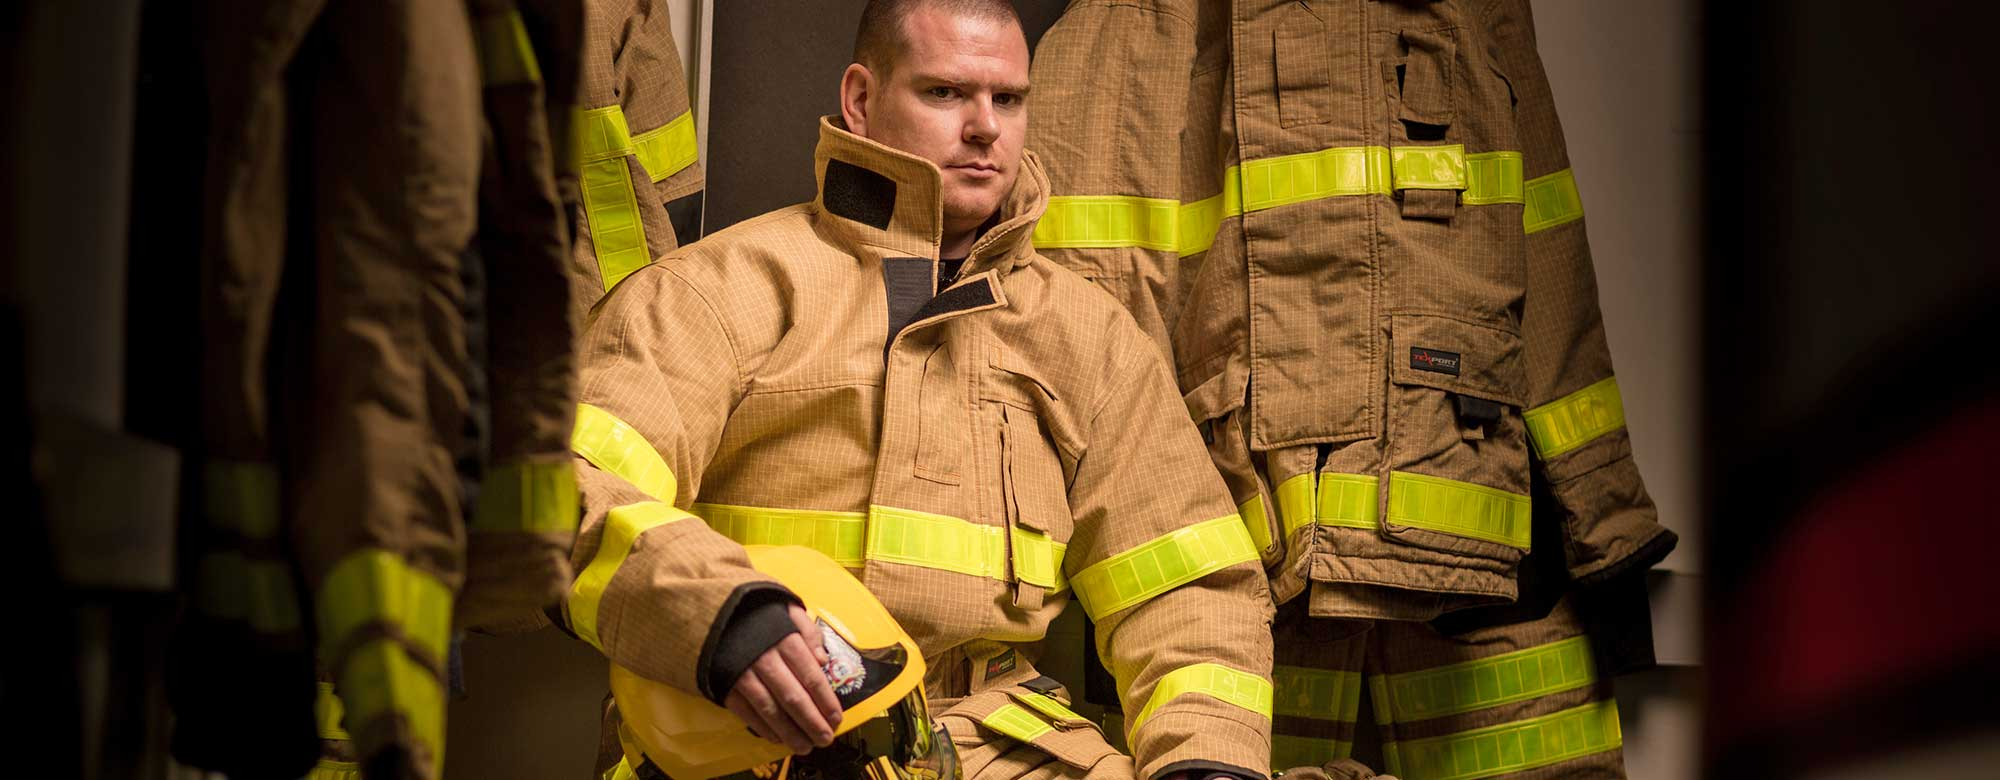 Fire and Rescue - Uniforms and Equipment | Hunter Apparel